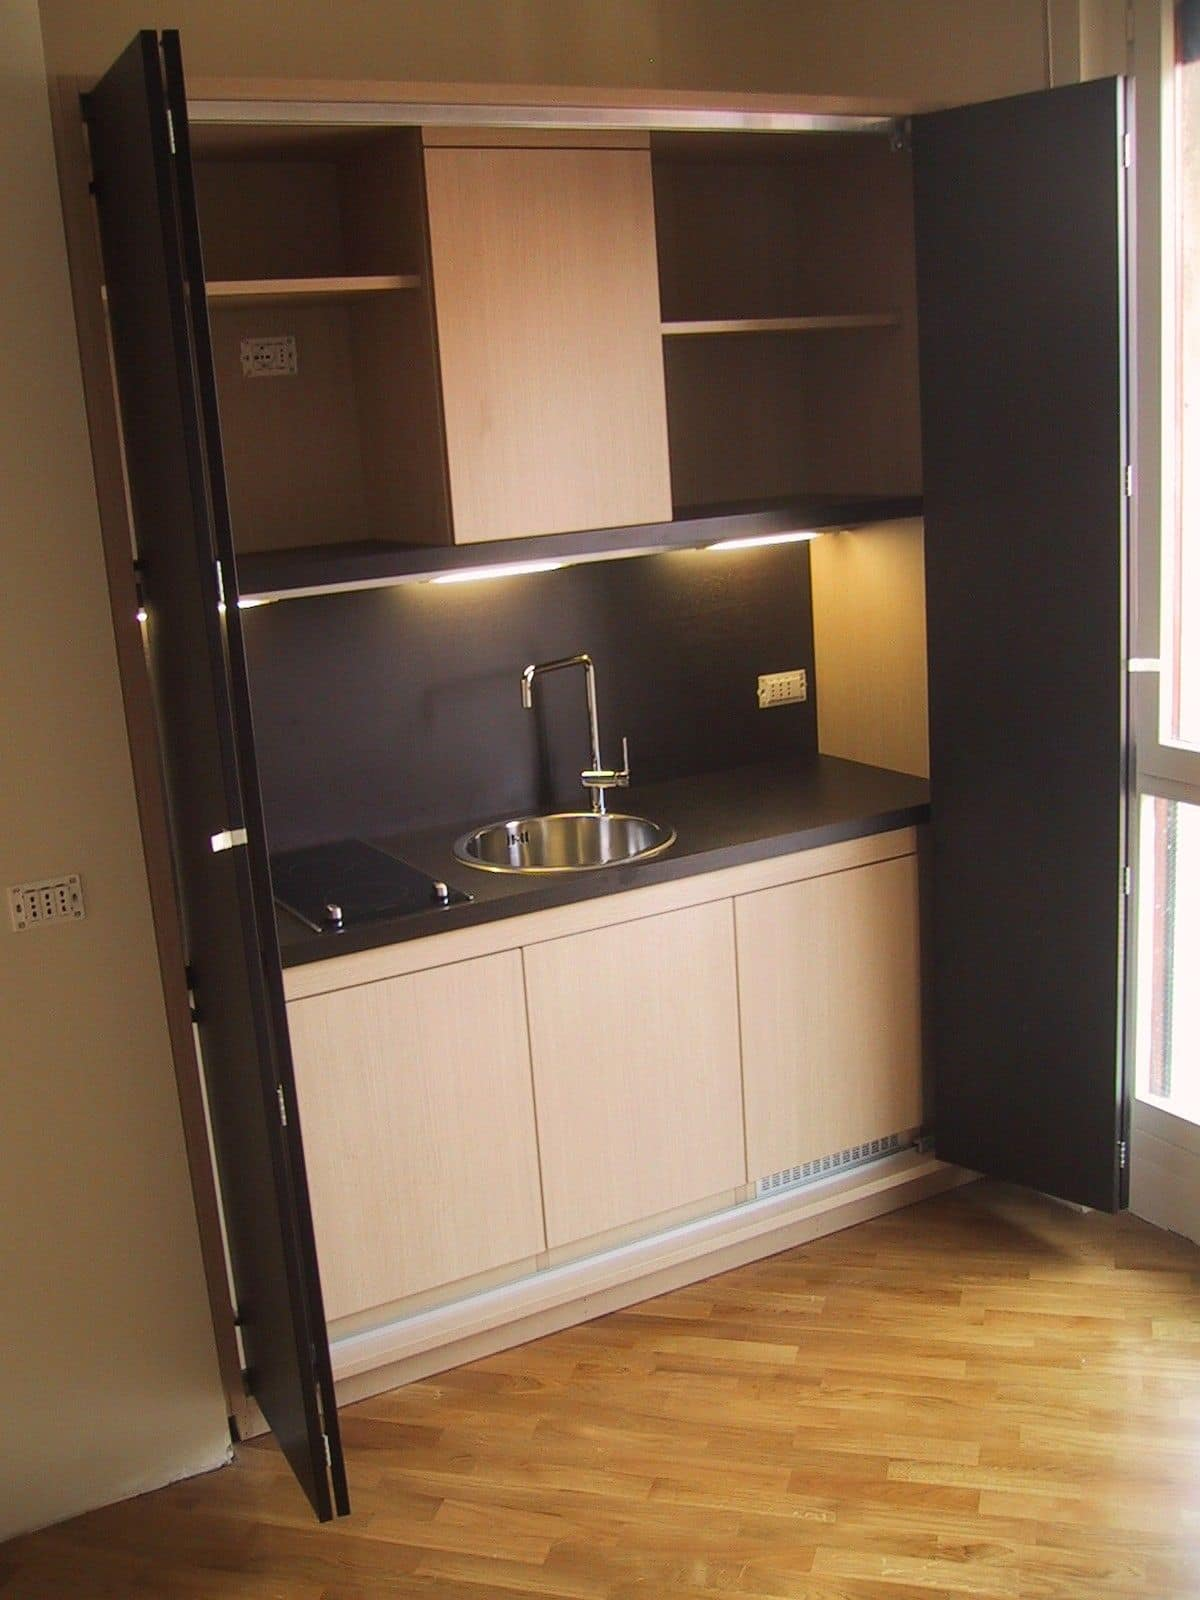 Kitchenette For Small Rooms Functional Customized